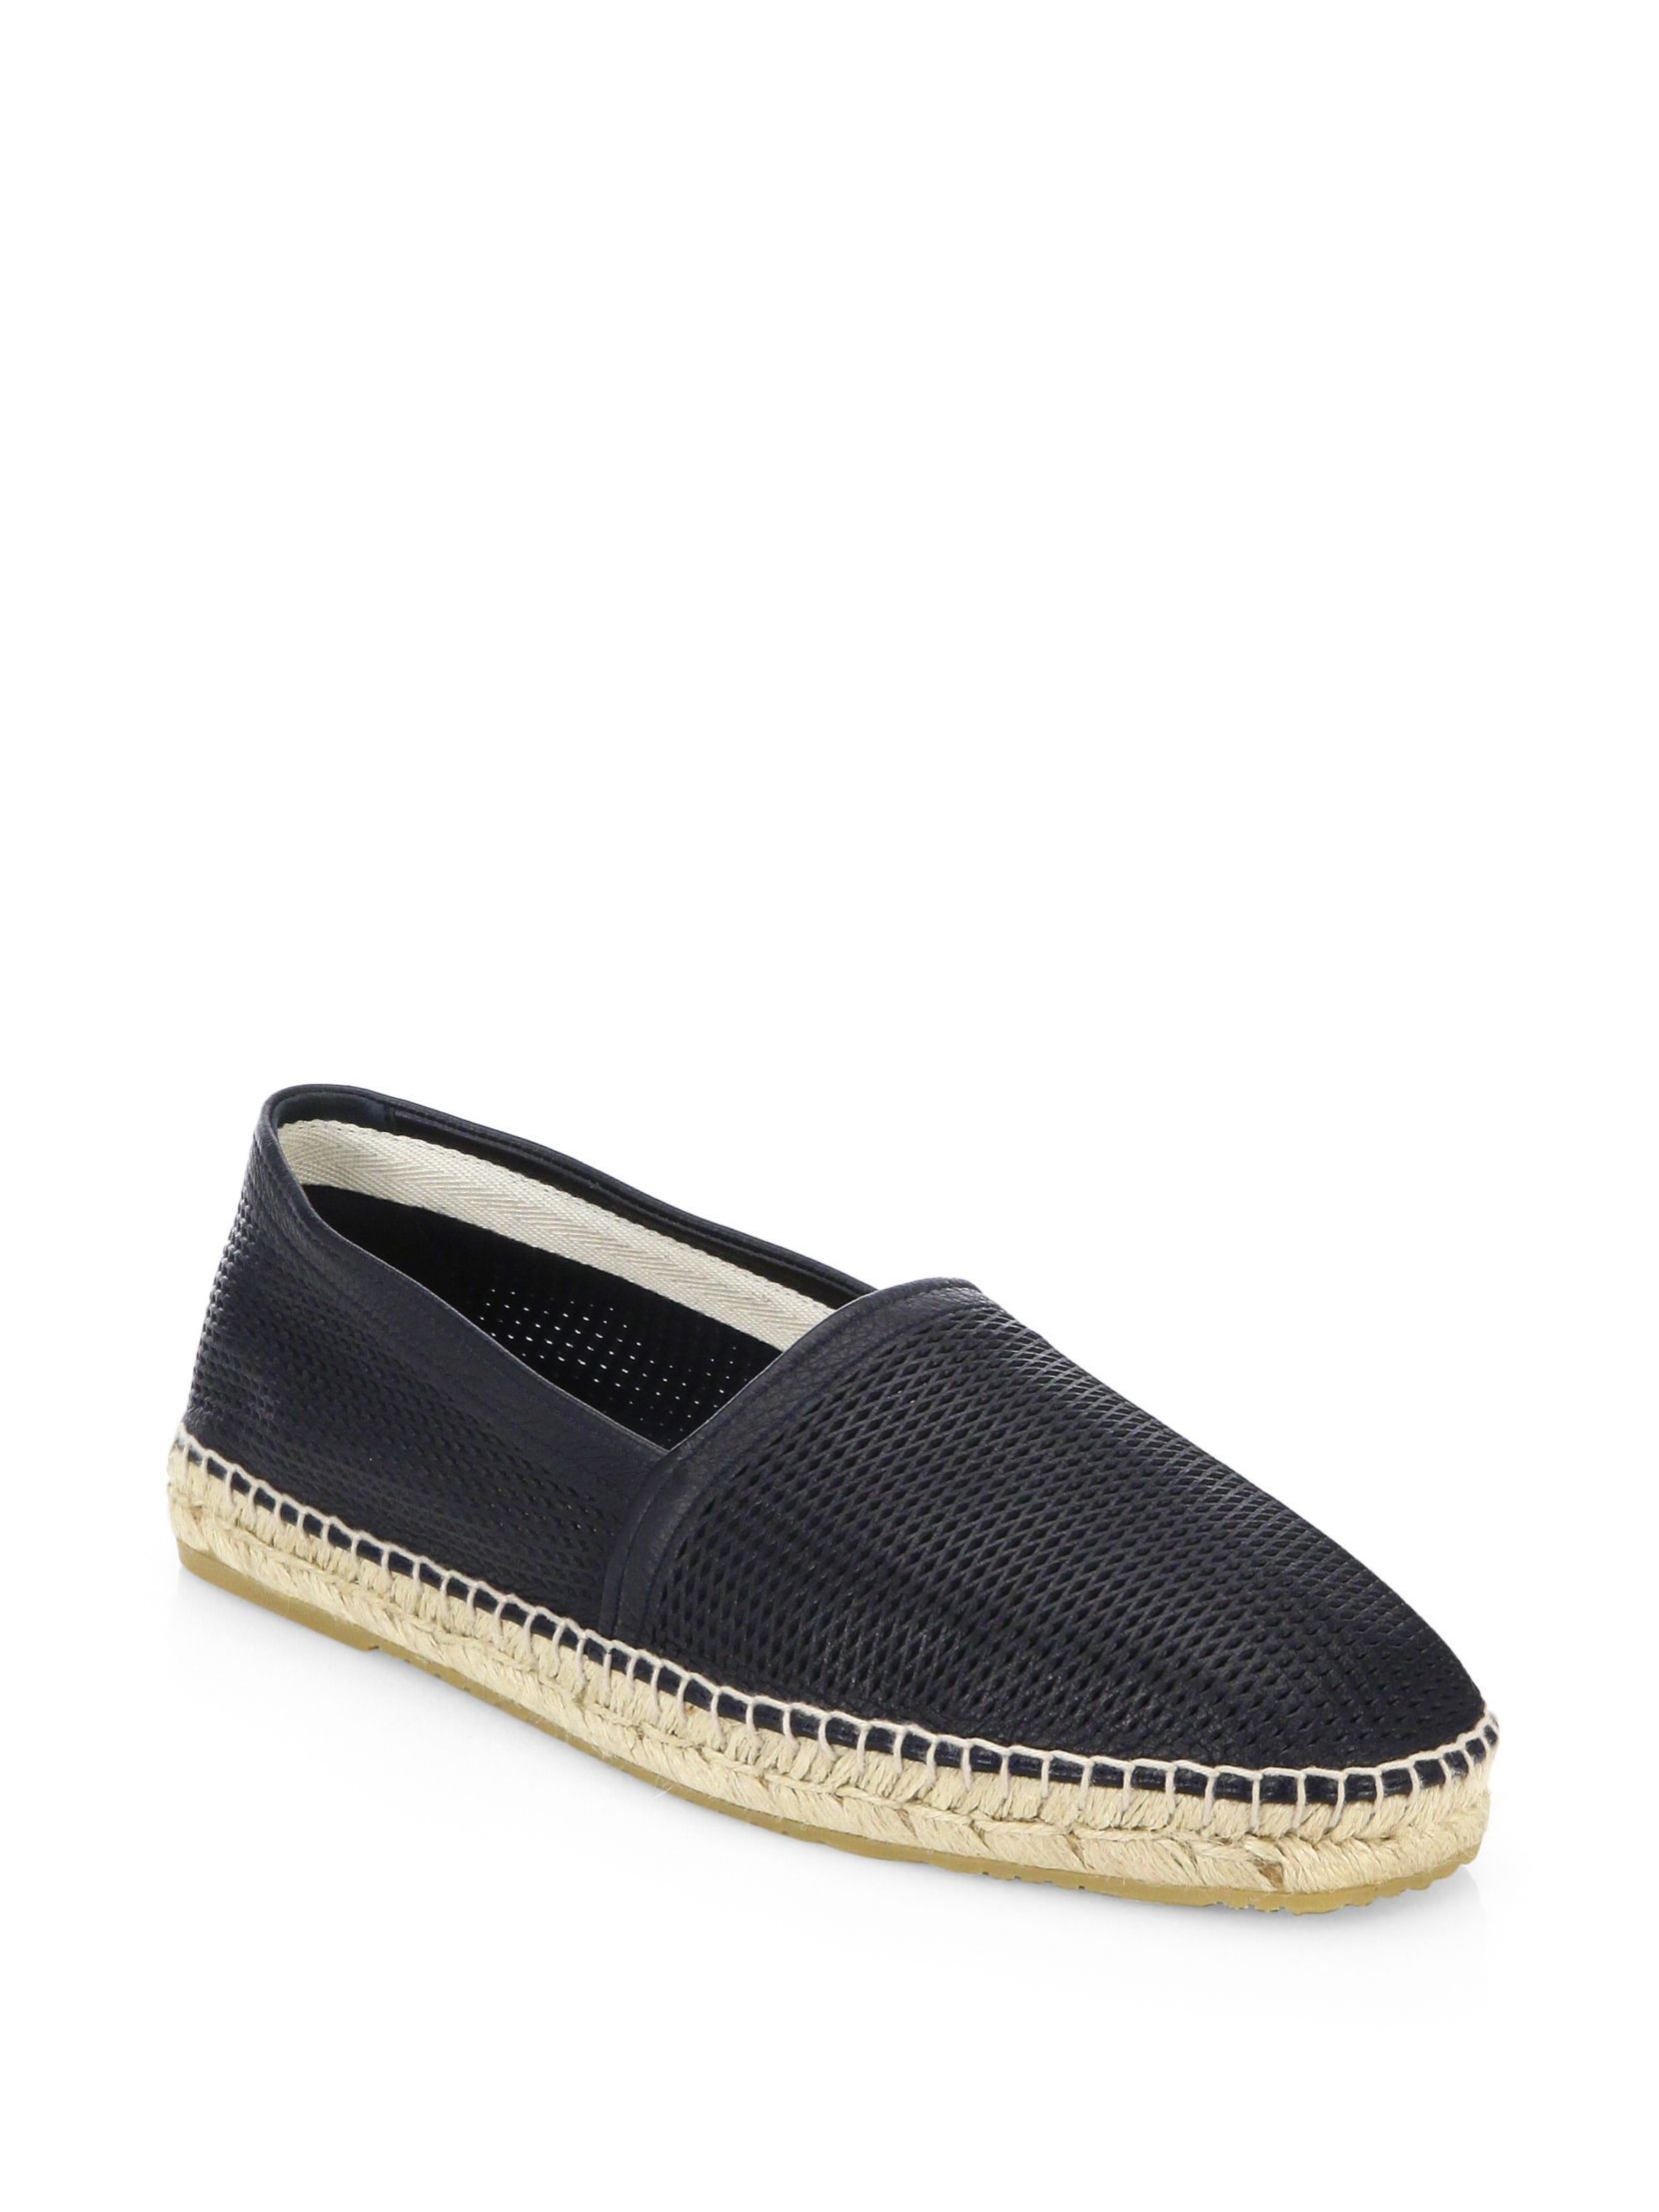 ArmaniPerforated Leather Espadrille PsFSYcs